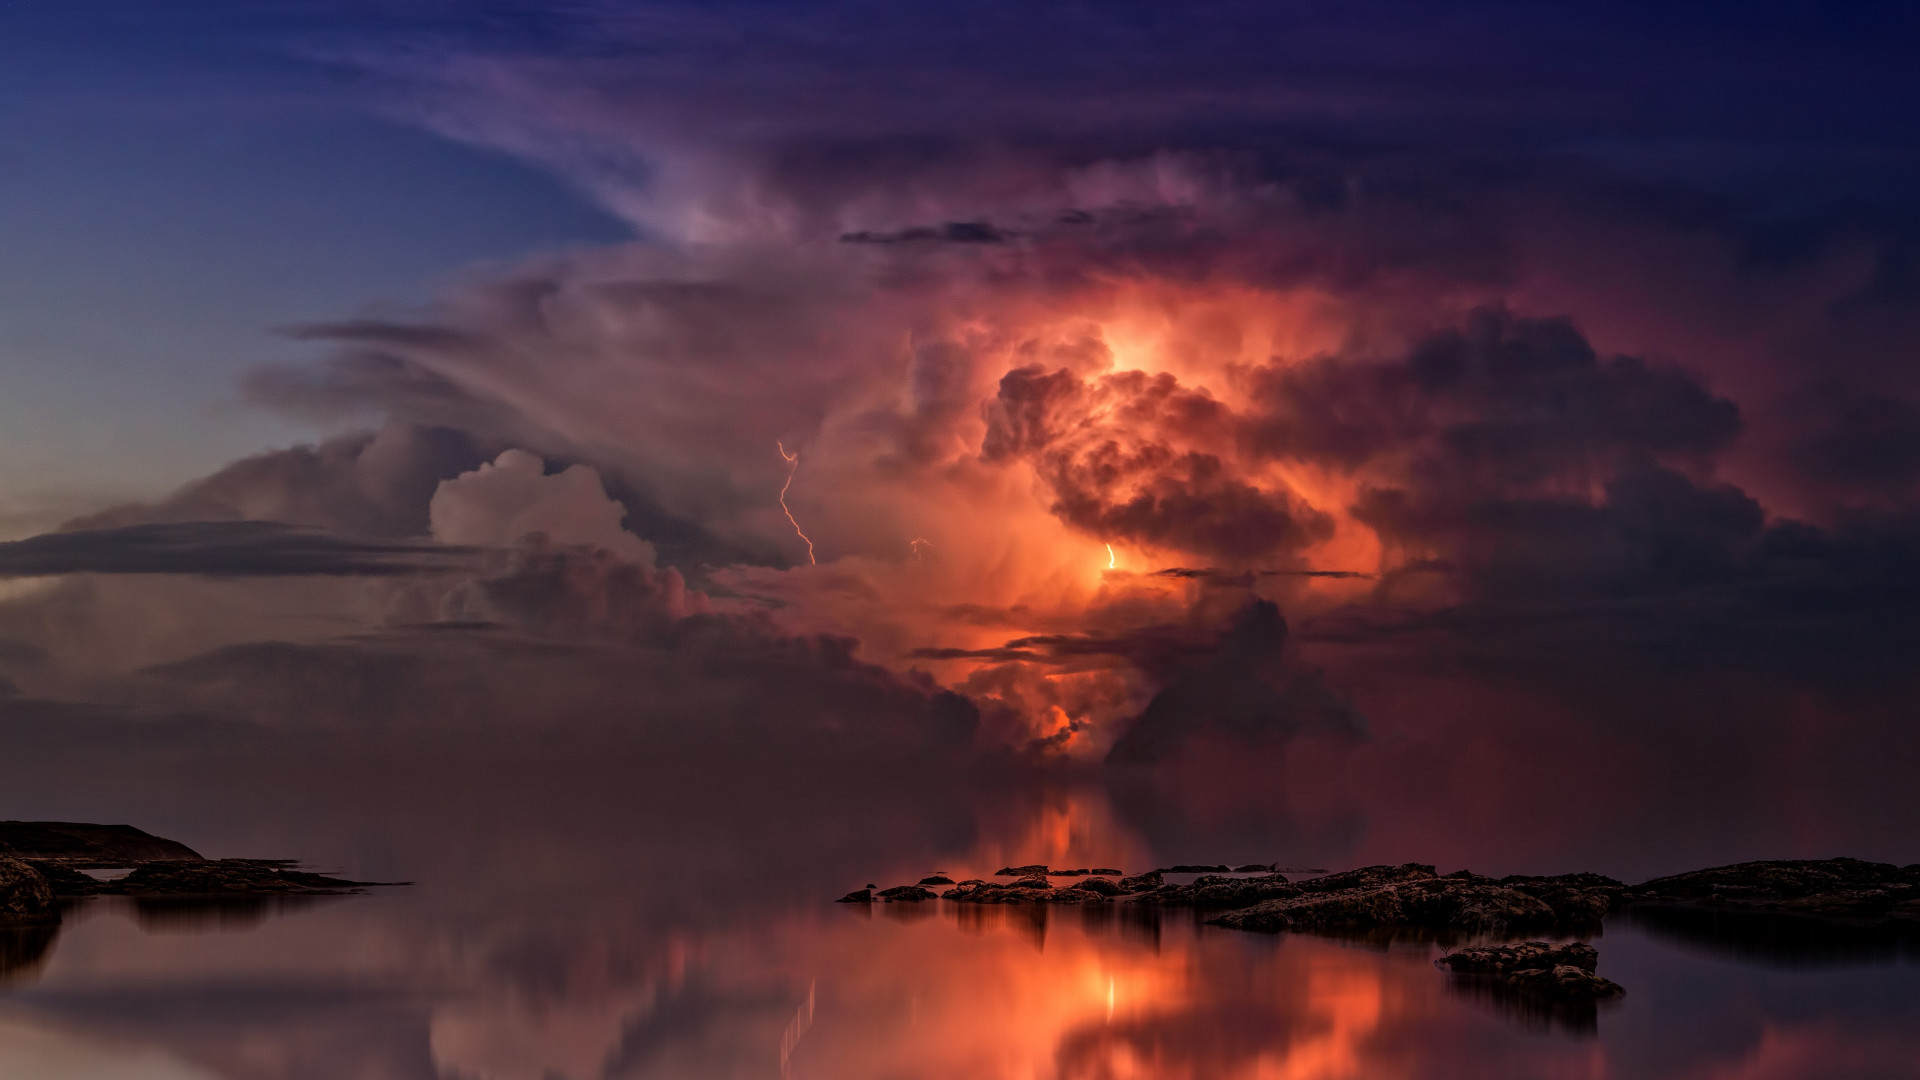 Lightning and thunderstorm in the sky wallpaper 1920x1080